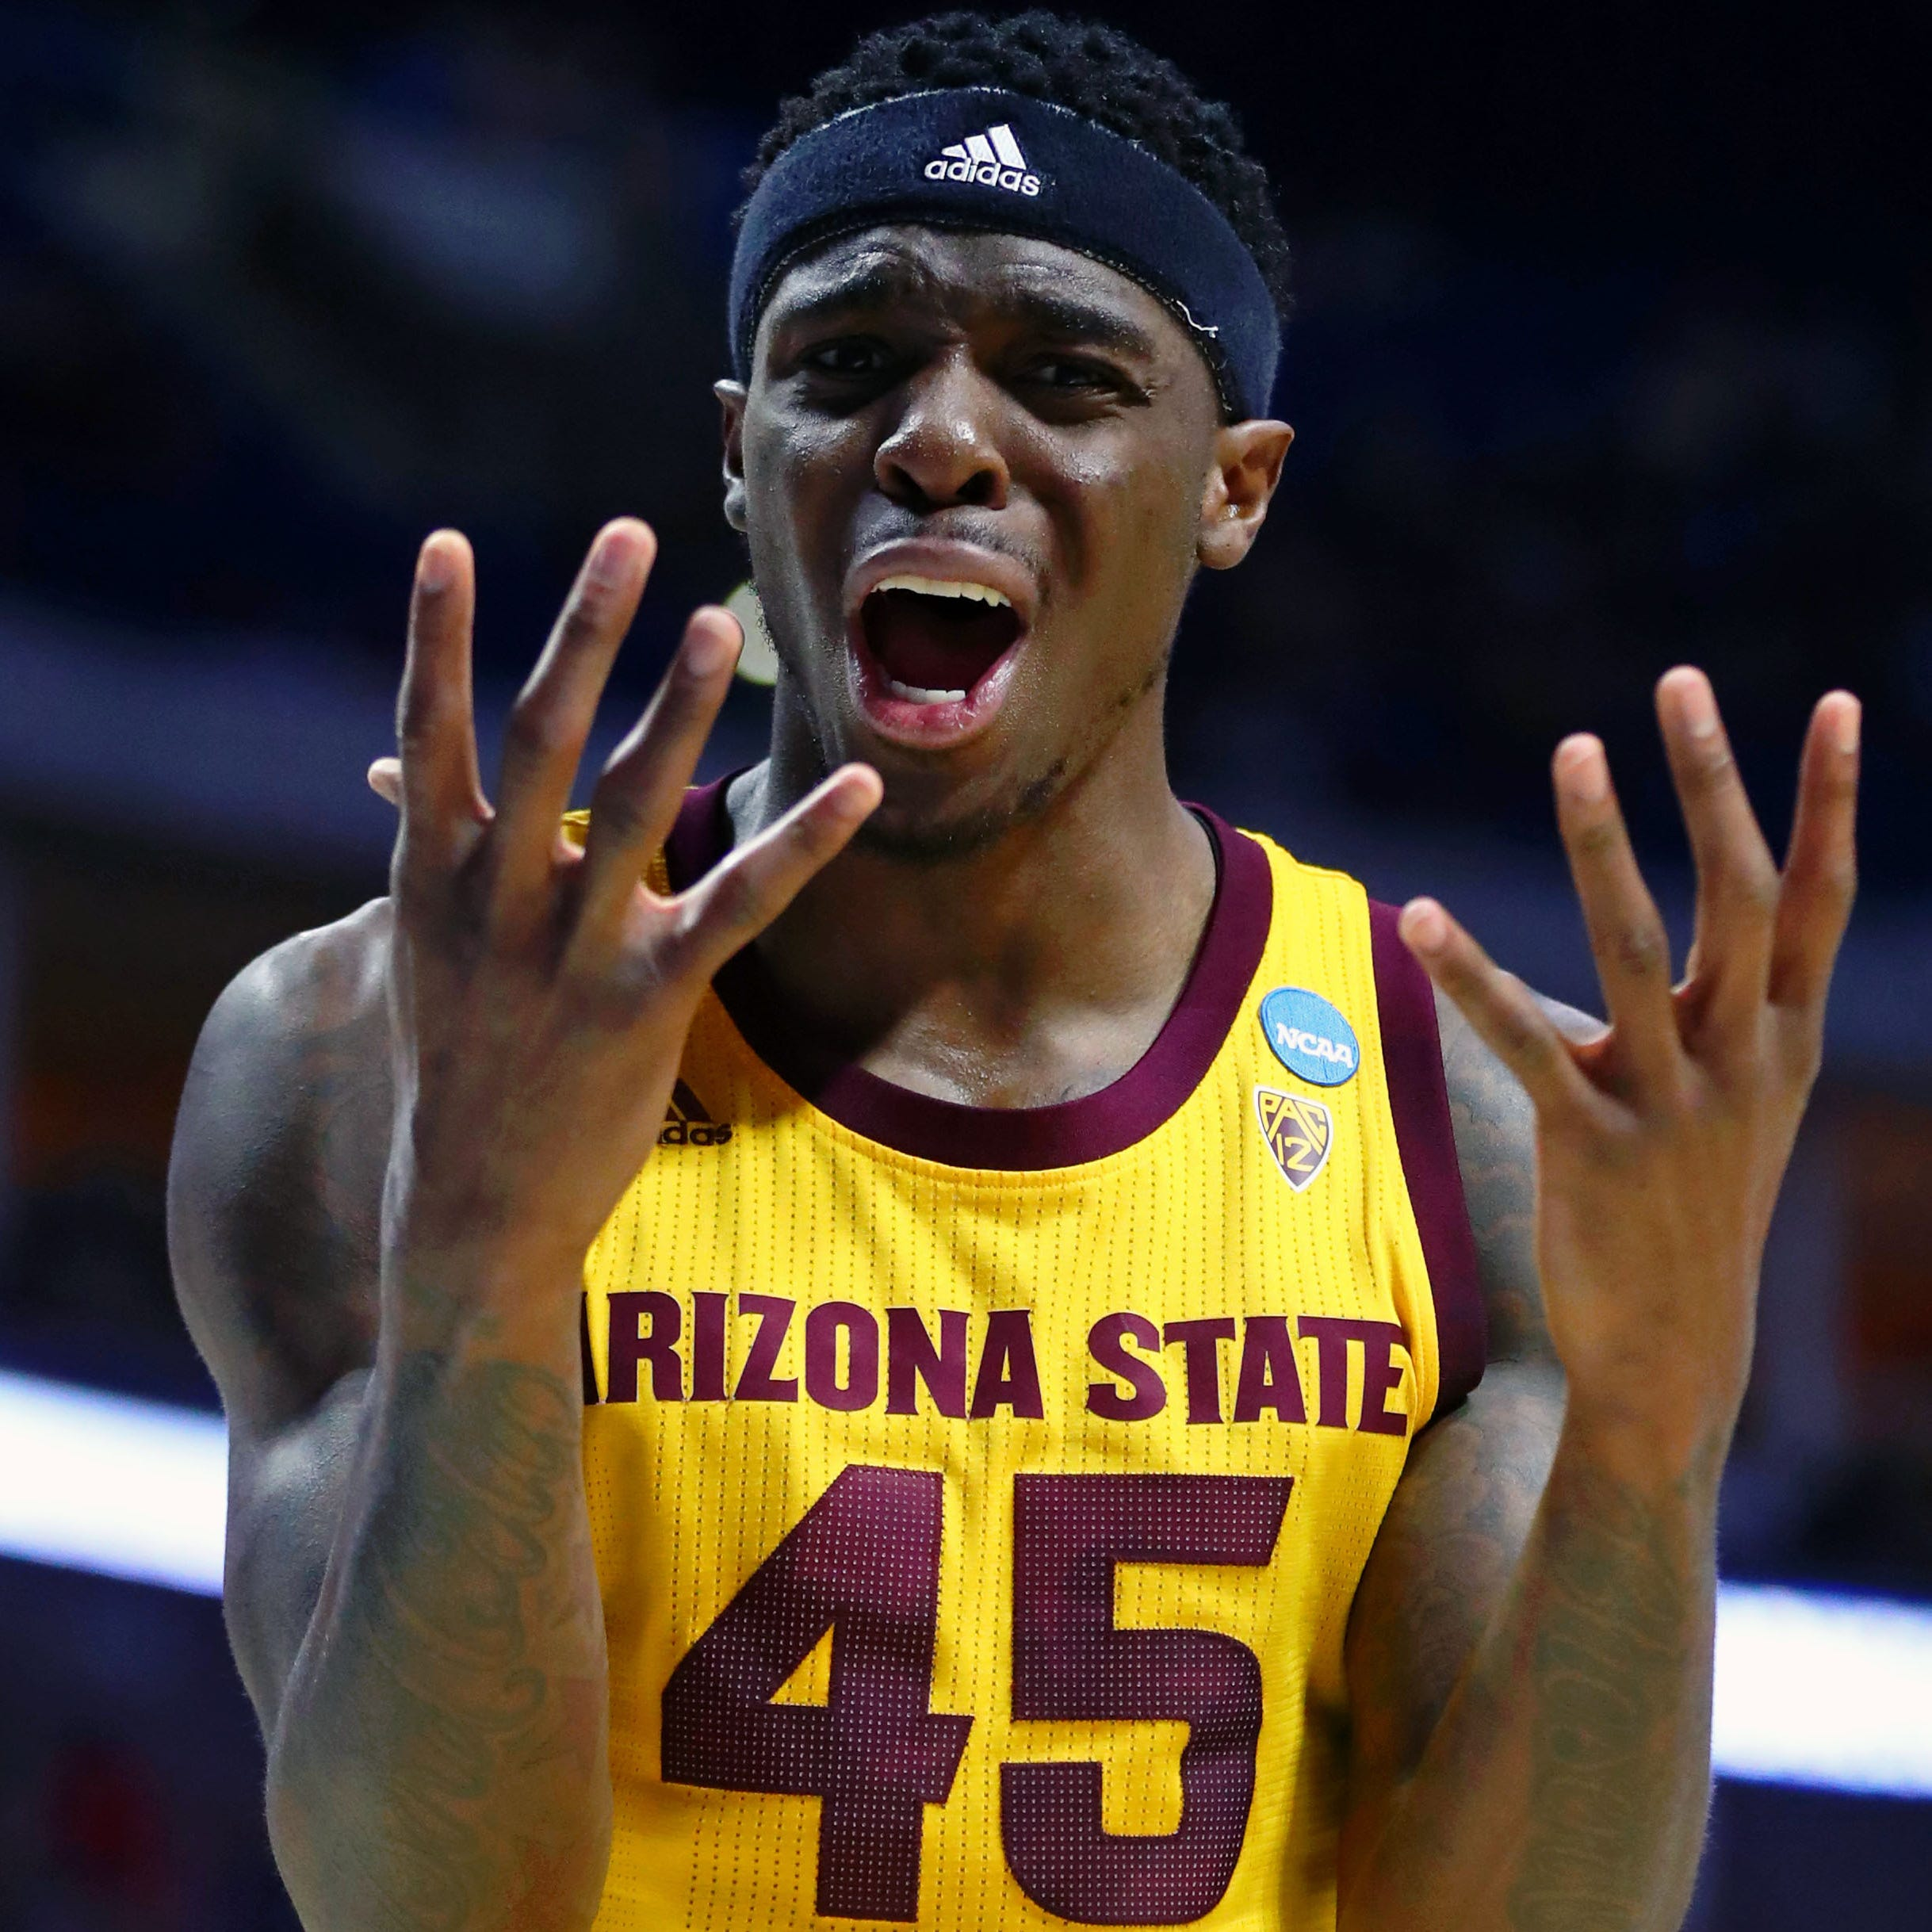 ASU men's basketball season ends with blowout loss to Buffalo in NCAA Tournament